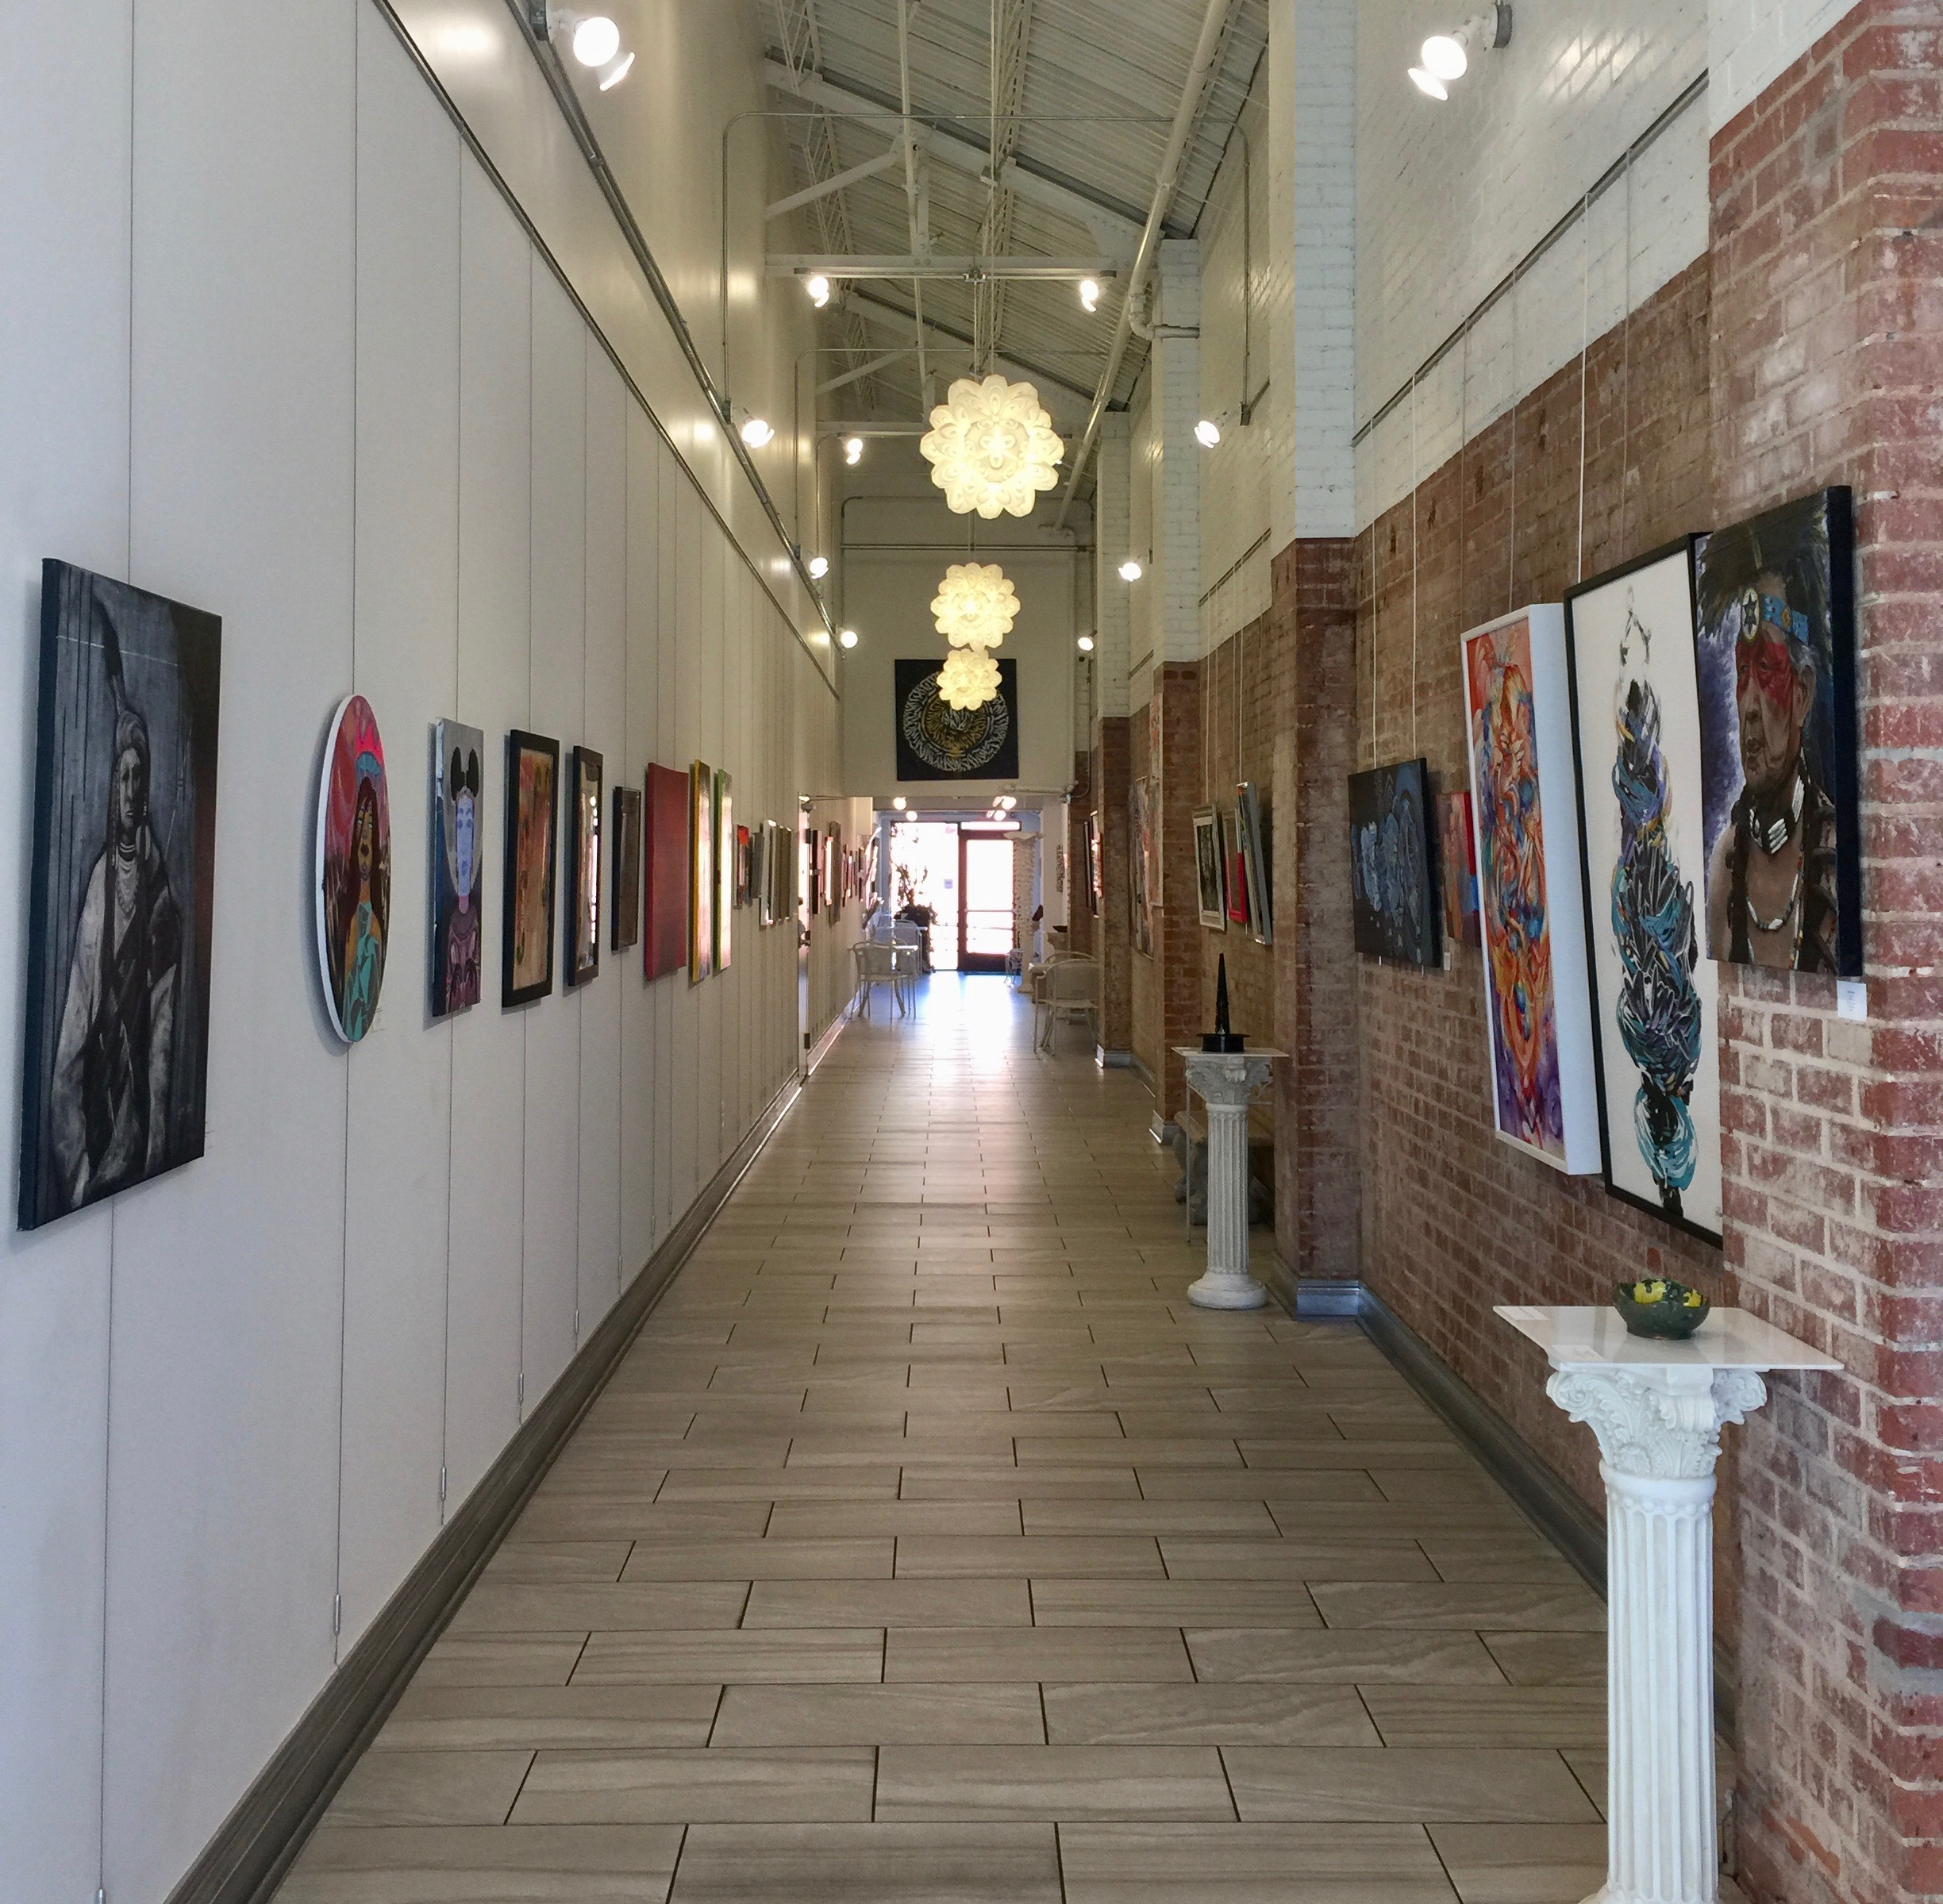 Inclusion in Art at The Art Hall, Dec 2018-March 2019